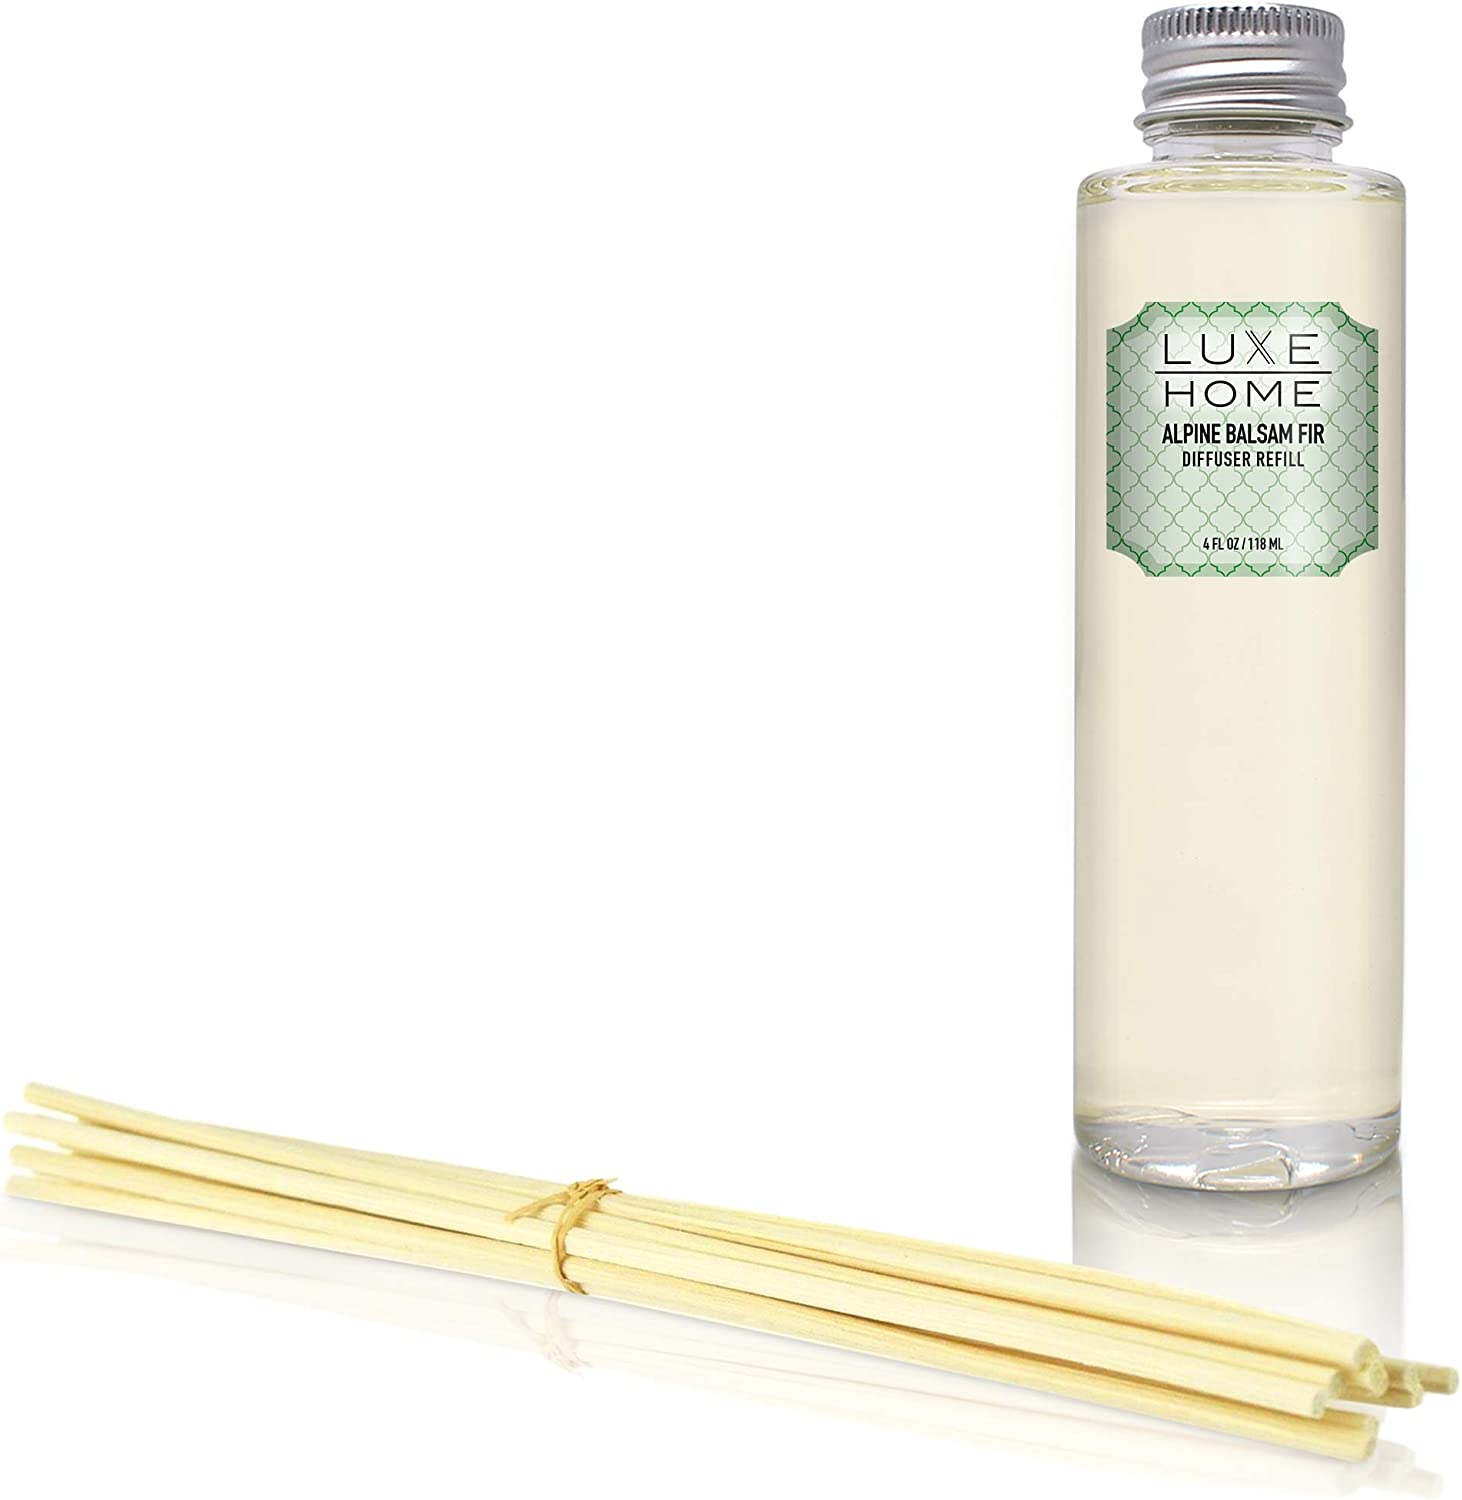 Luxe Home Alpine Balsam Fir Reed Diffuser Refill Oil with Sticks | Festive Scent with Evergreen, Pine & Woodsy Notes | Scented Replacement Oil for Room Diffuser & Reeds